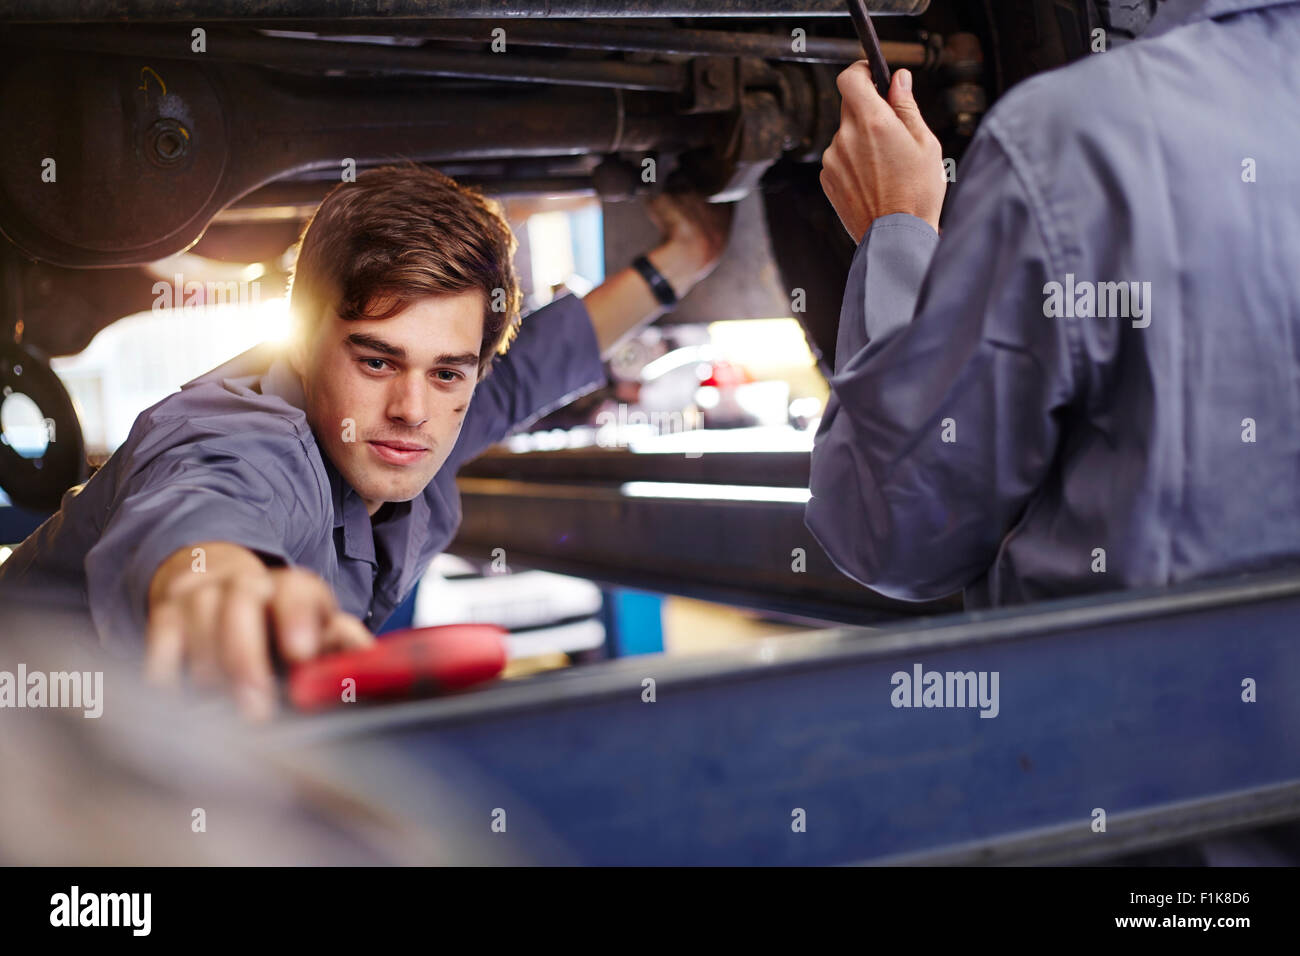 Tool Shop Stock Photos Images Alamy Engineer Repairing Circuit Board Royalty Free Photo Image Mechanic Reaching For In Auto Repair